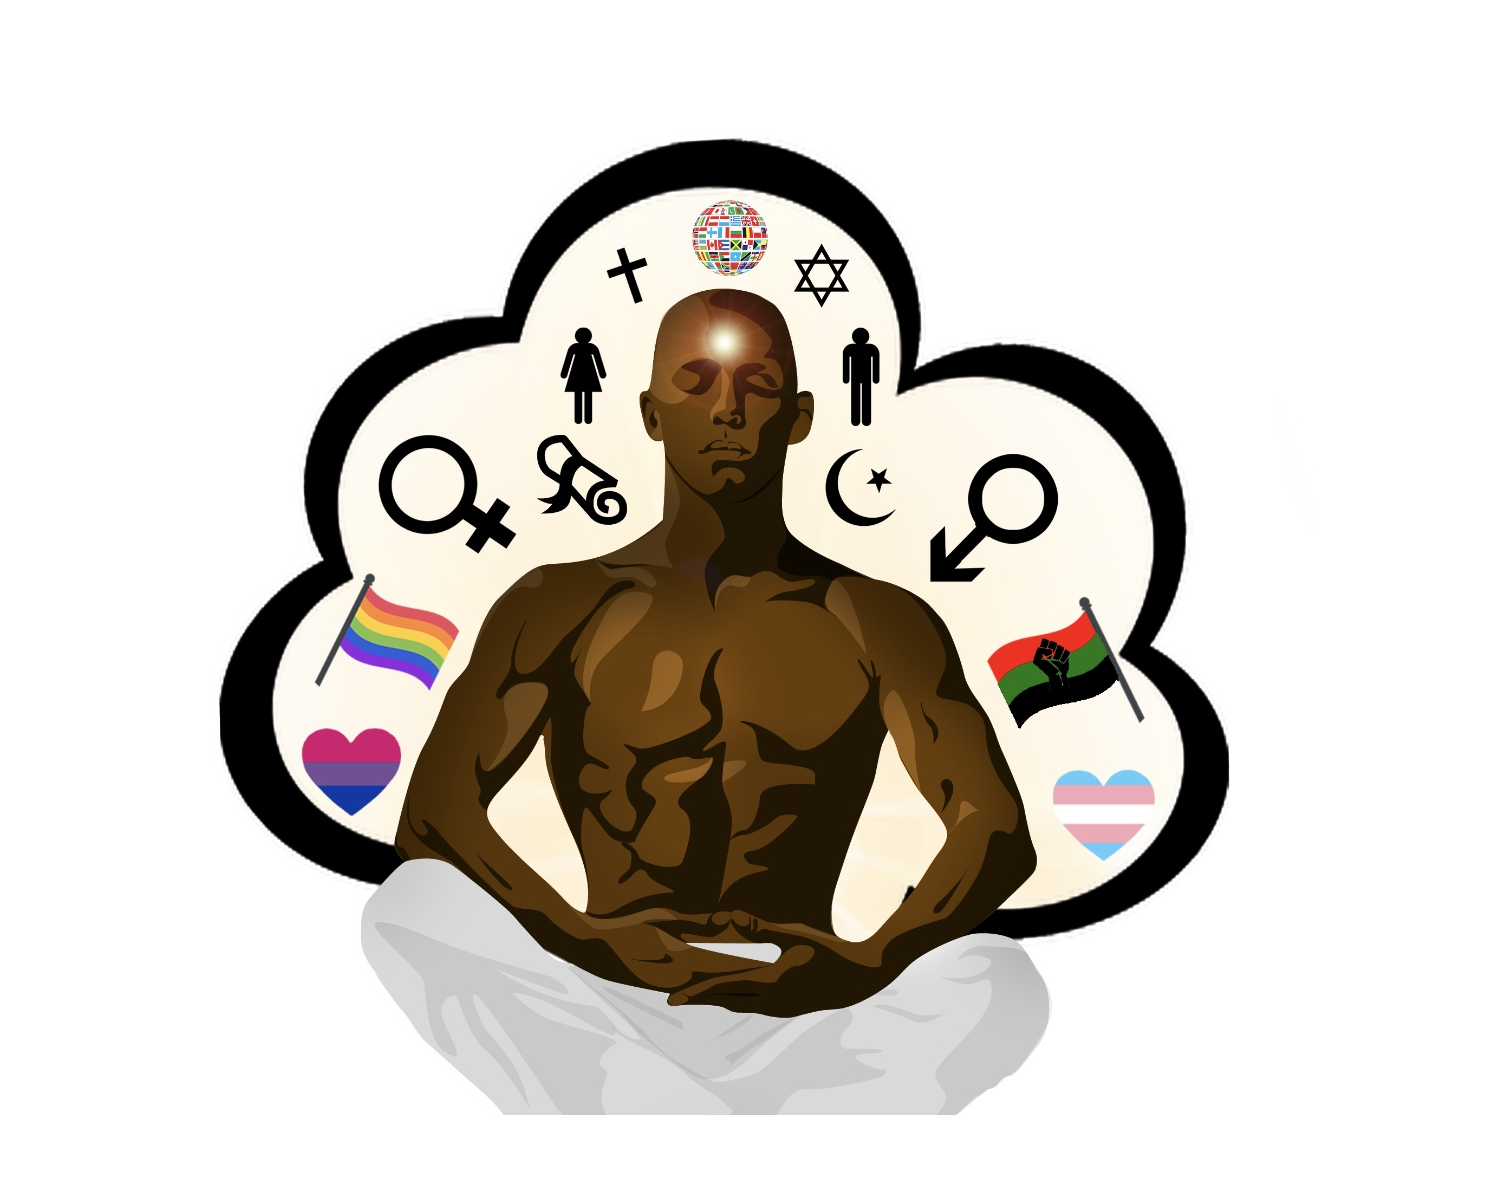 Redefining Black Masculinity icon - black meditating man surrounded by various symbols